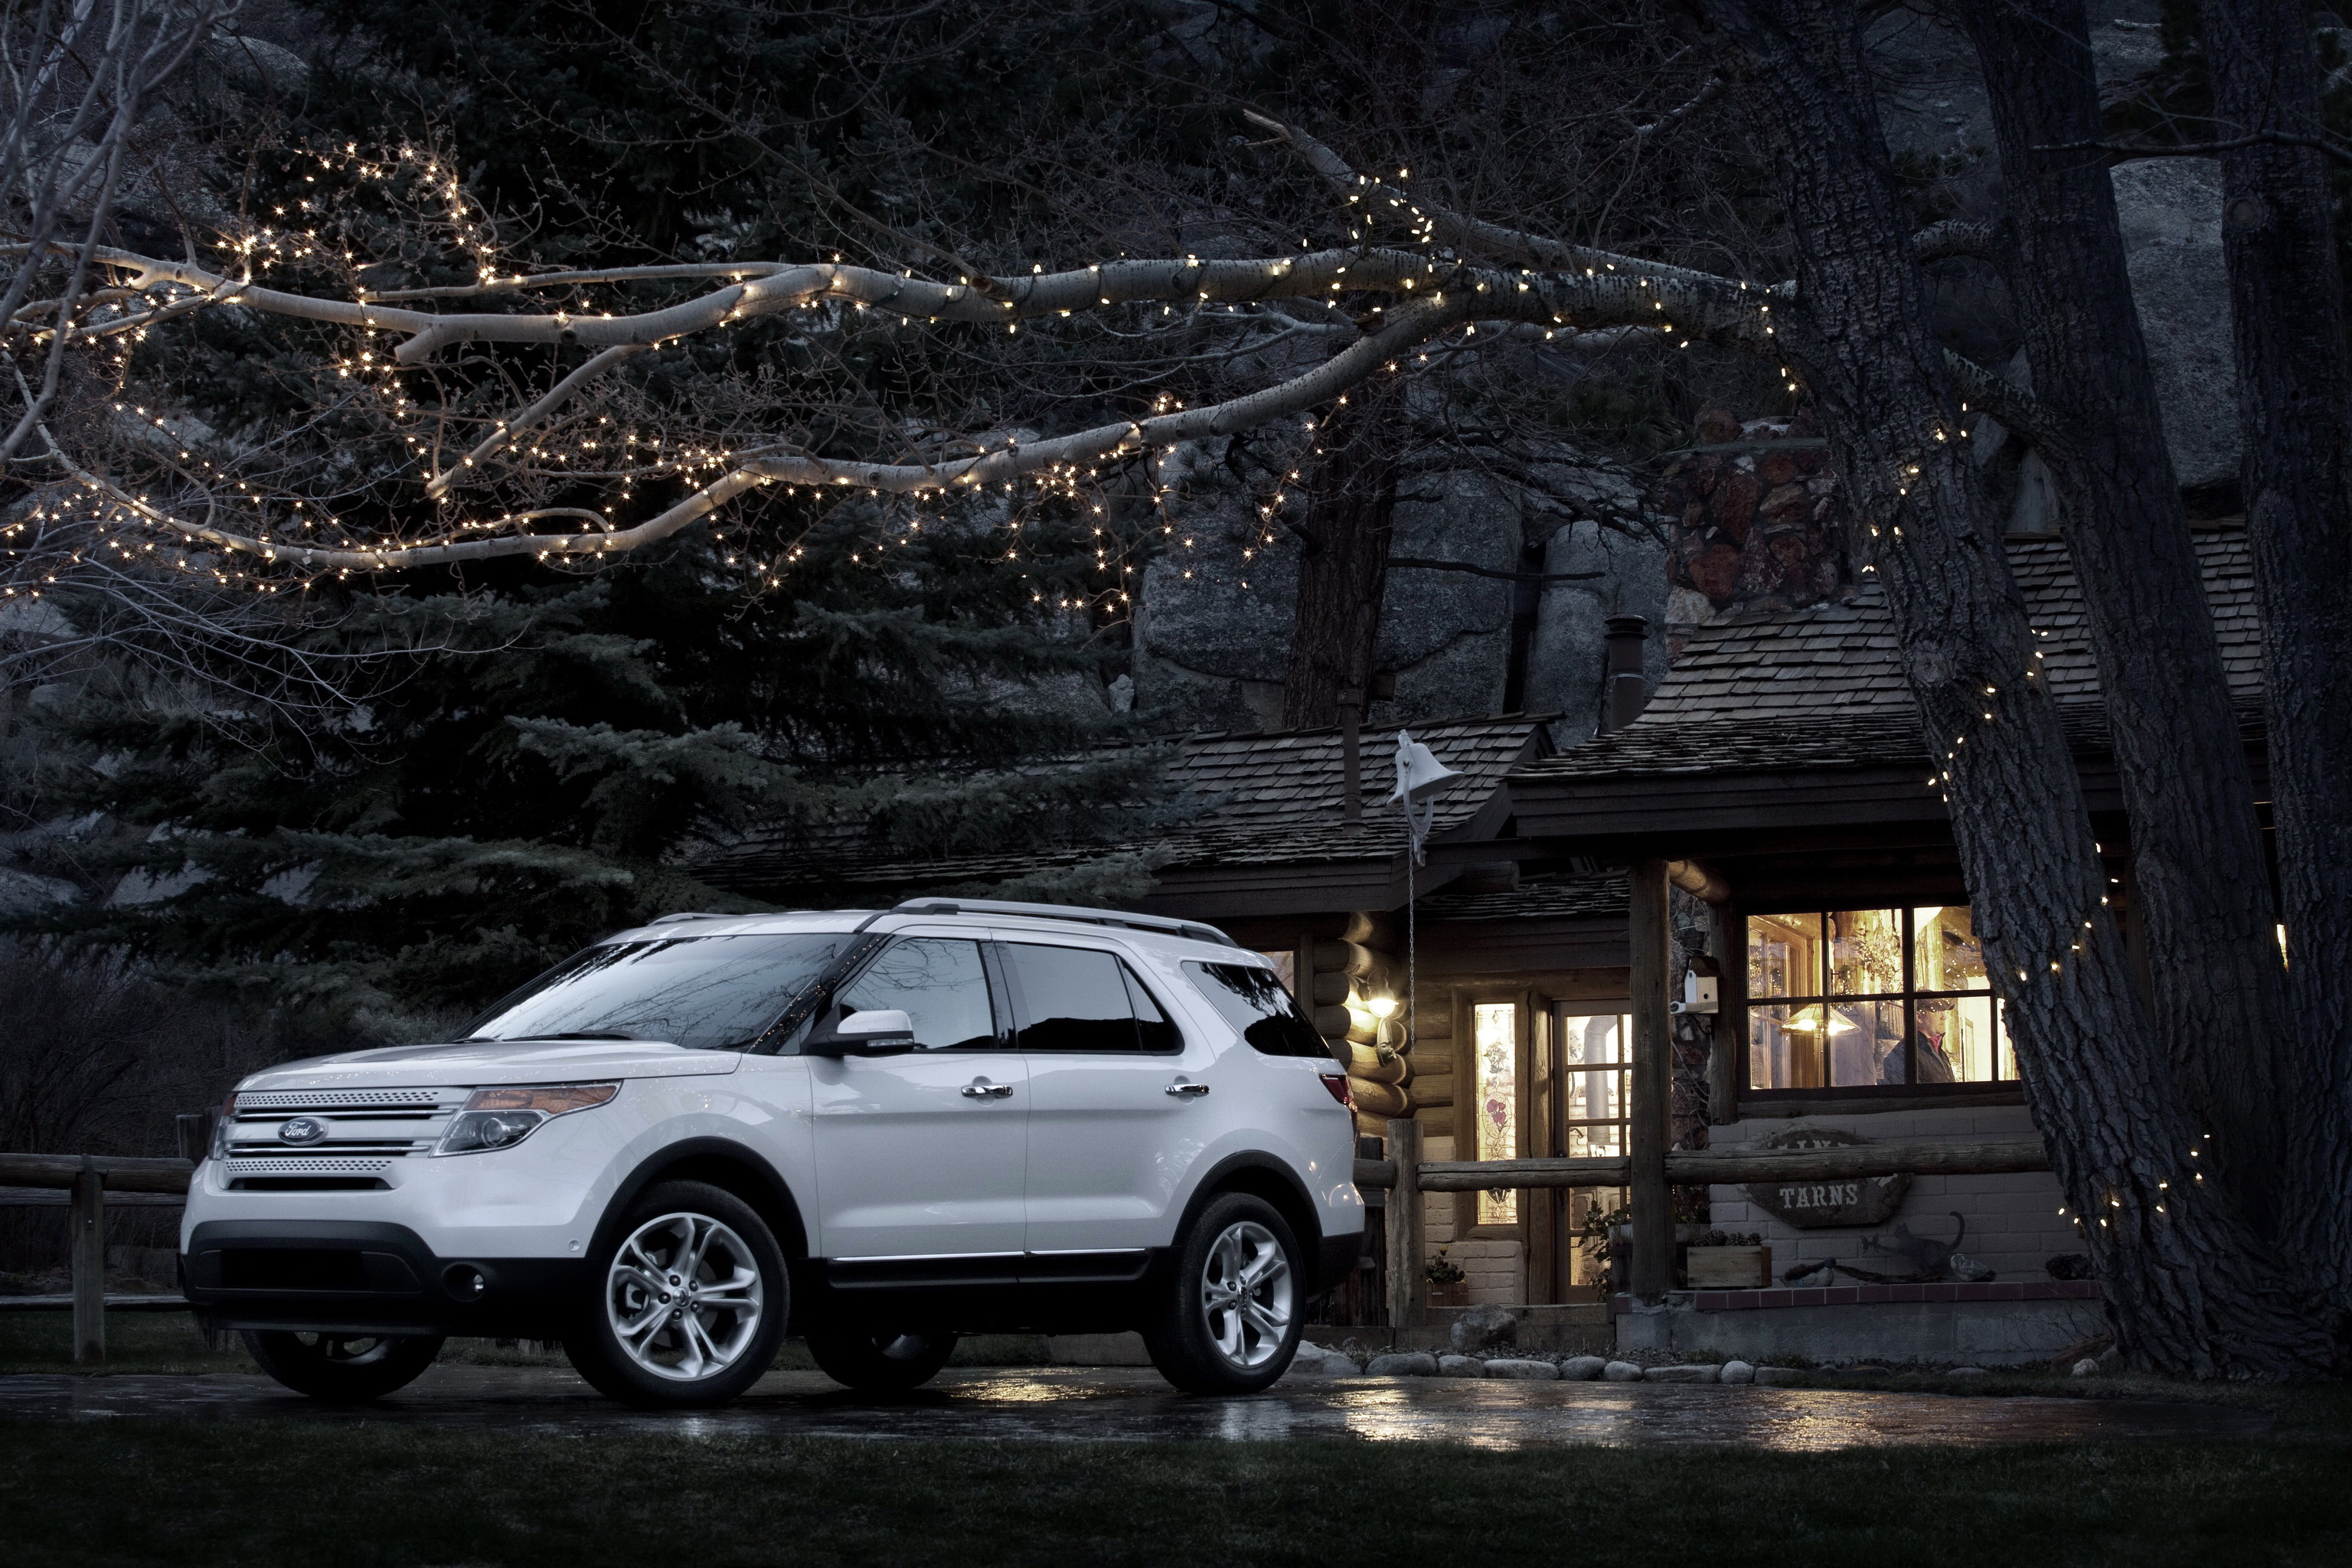 3072x2048 - Ford Explorer Wallpapers 11